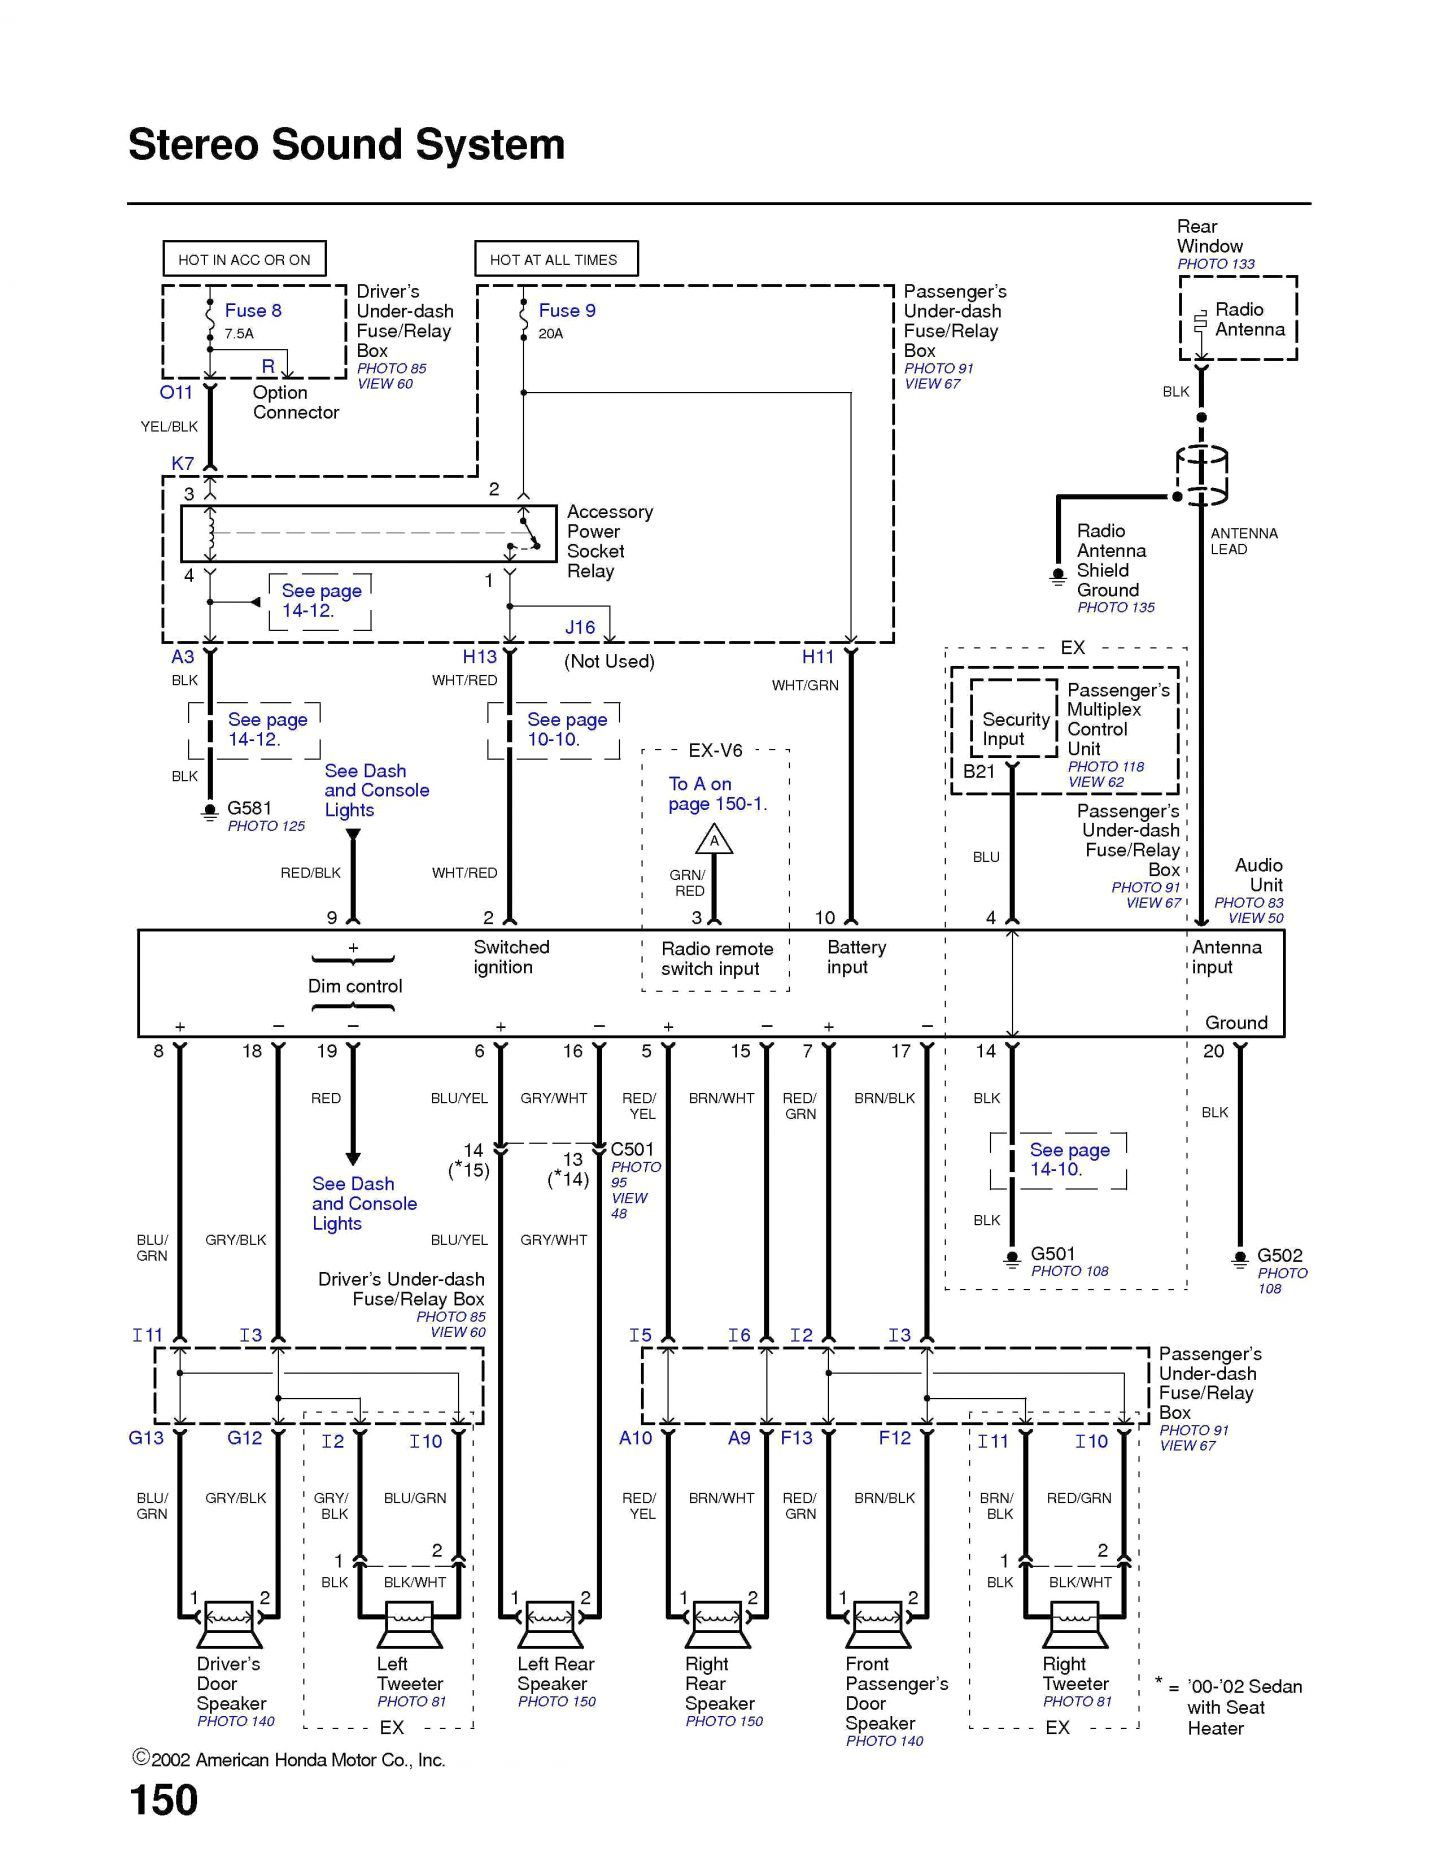 DIAGRAM] 40 Honda Crv Stereo Wiring Diagram FULL Version HD ...